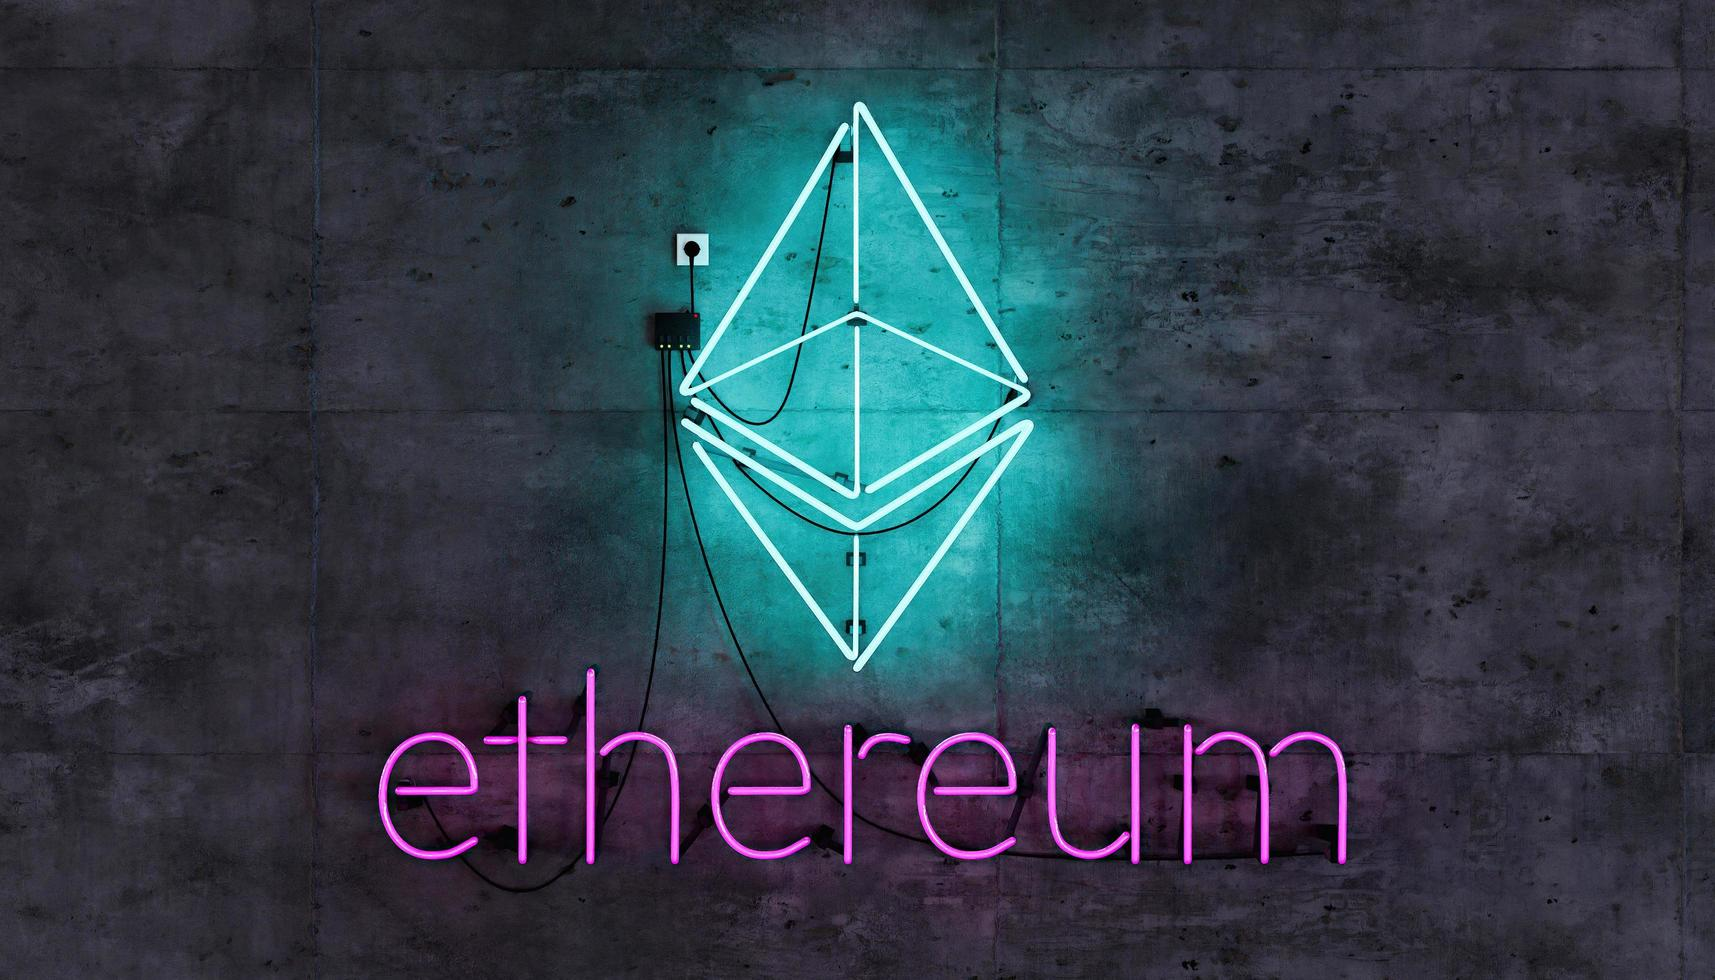 Ethereum symbol on neon lamp on concrete wall photo